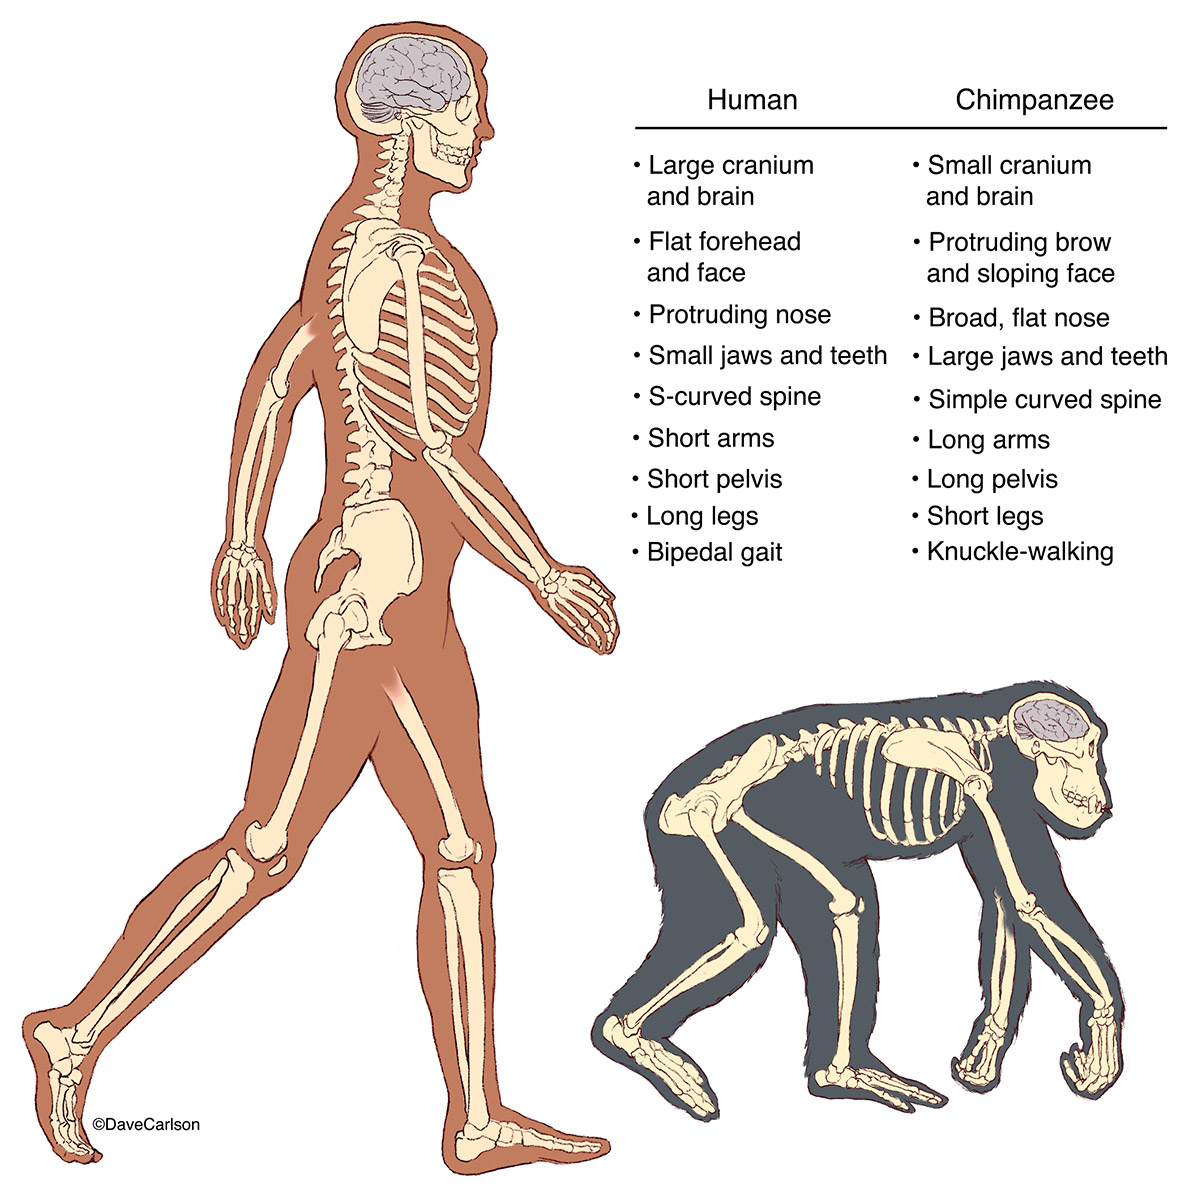 illustration, human, chimp, skeletal structure posture, skeletons, photo